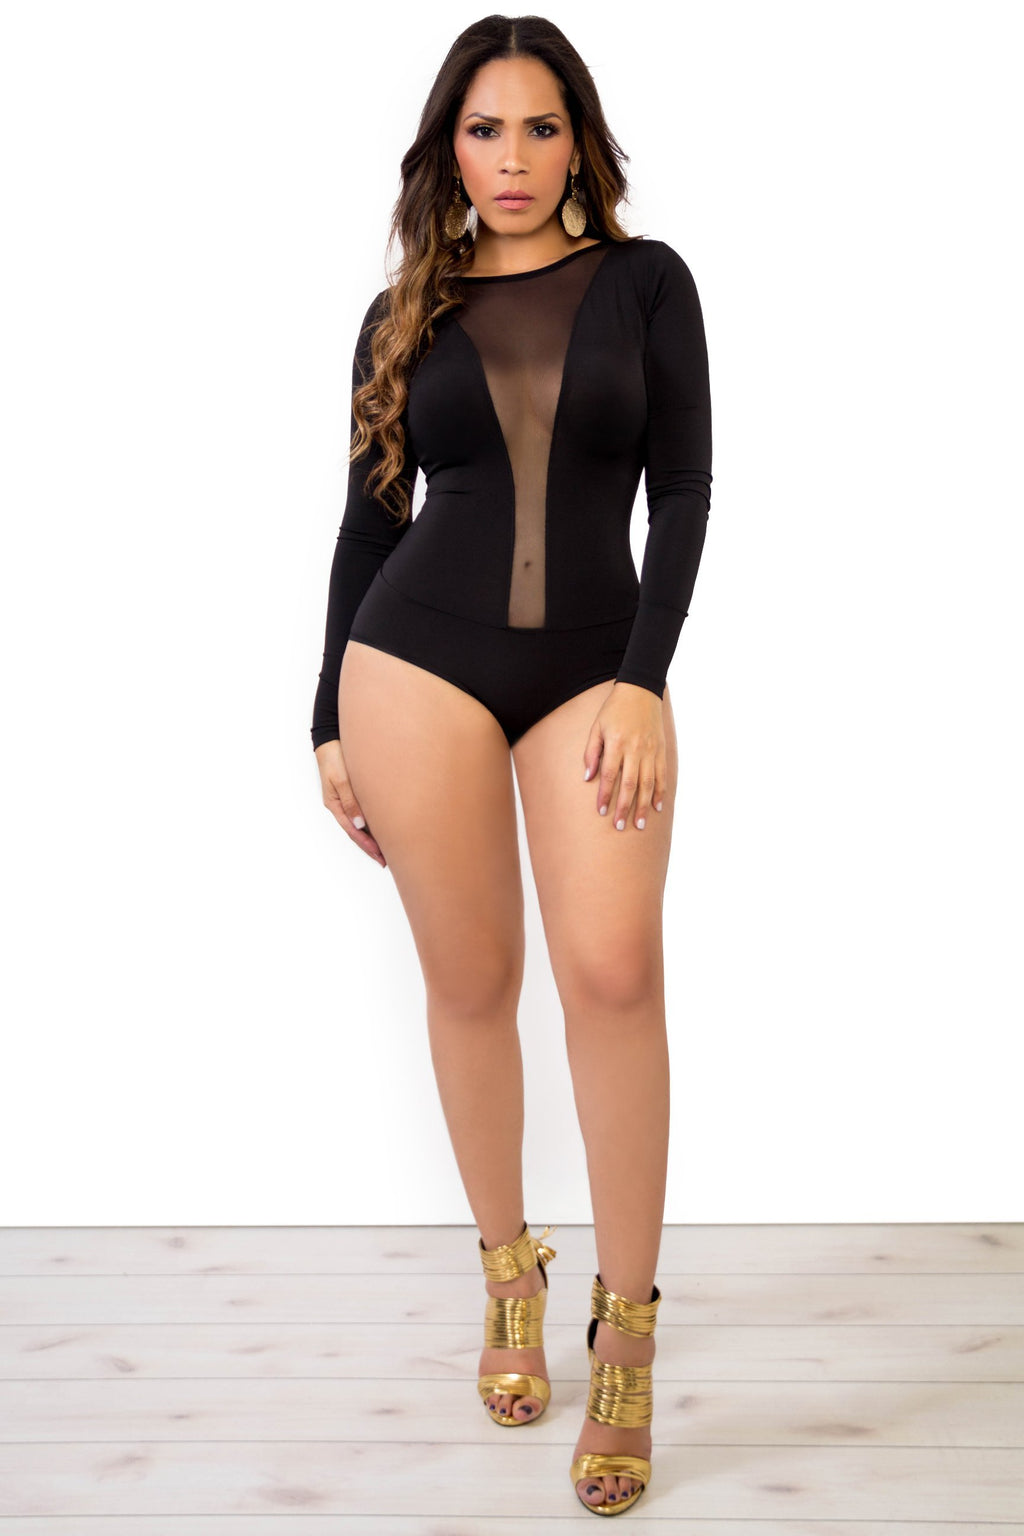 Black Long Sleeves Bodysuit W/ Sheer Plunge V-Neck - MY SEXY STYLES